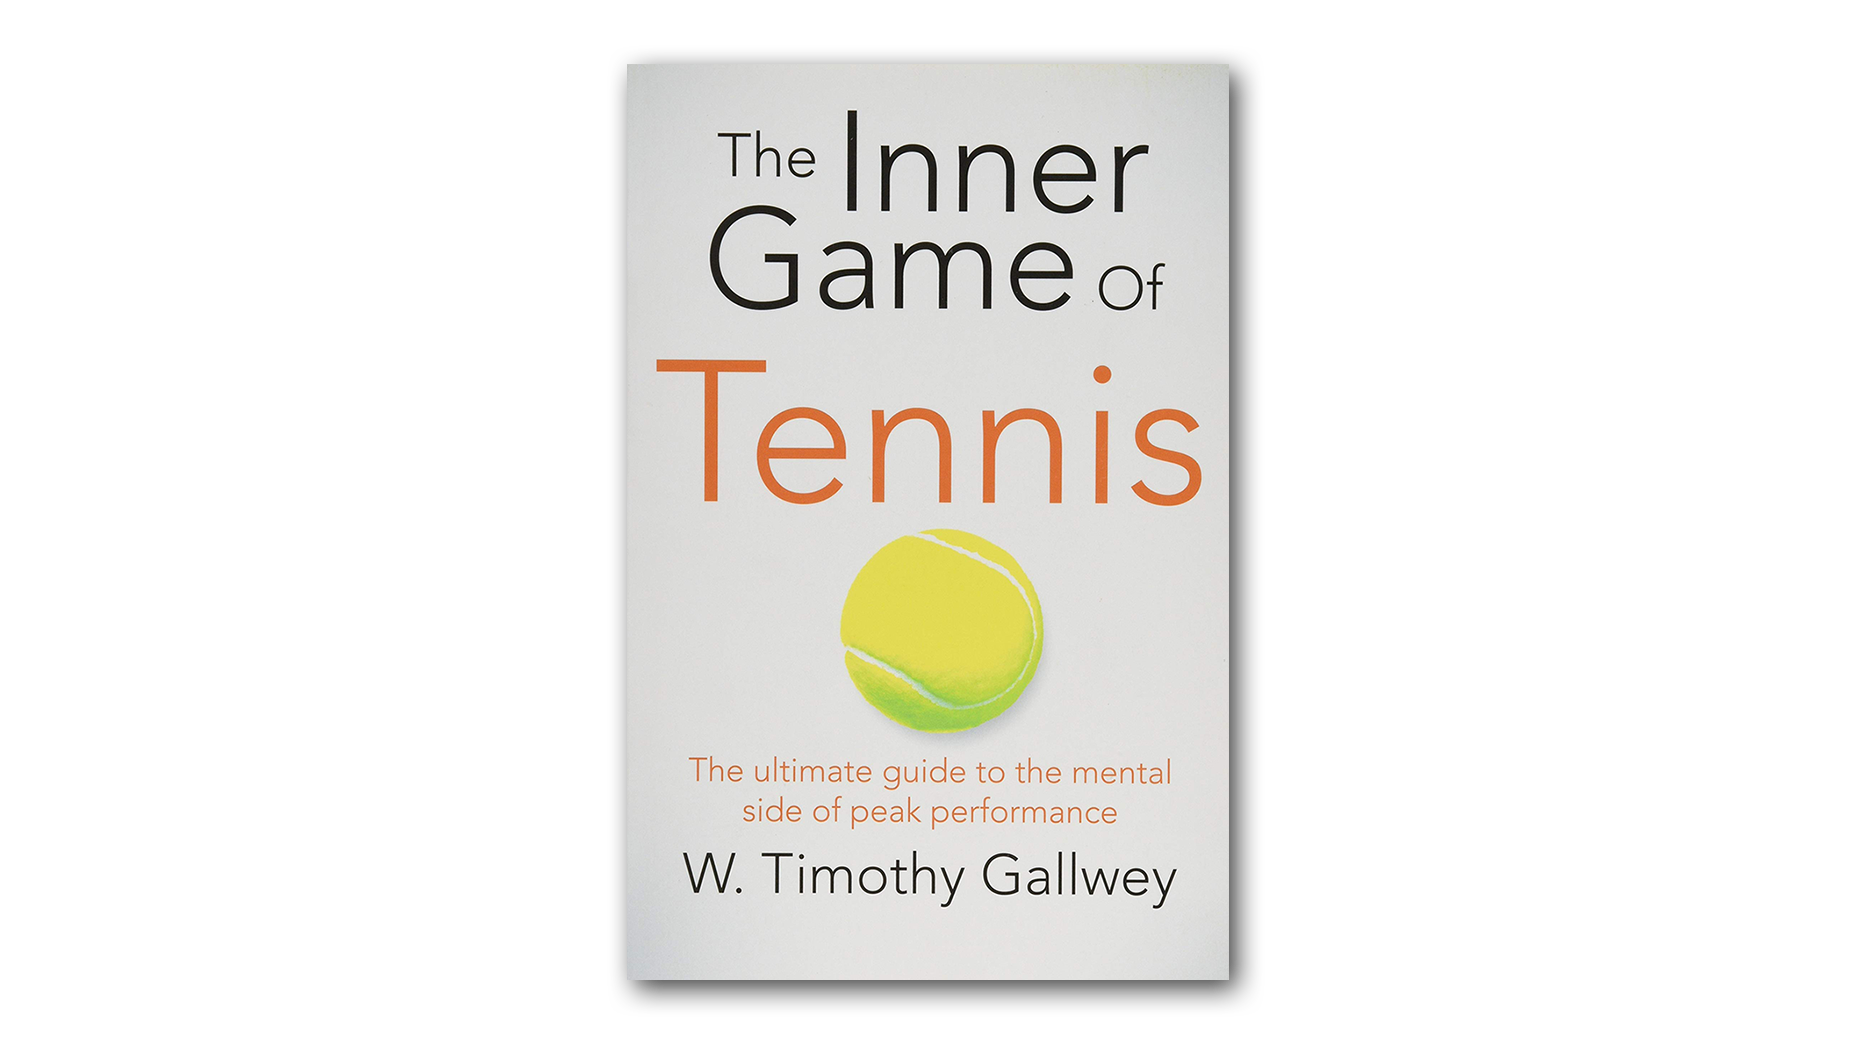 The Inner Game Of Tennis – W. Timothy Gallwey